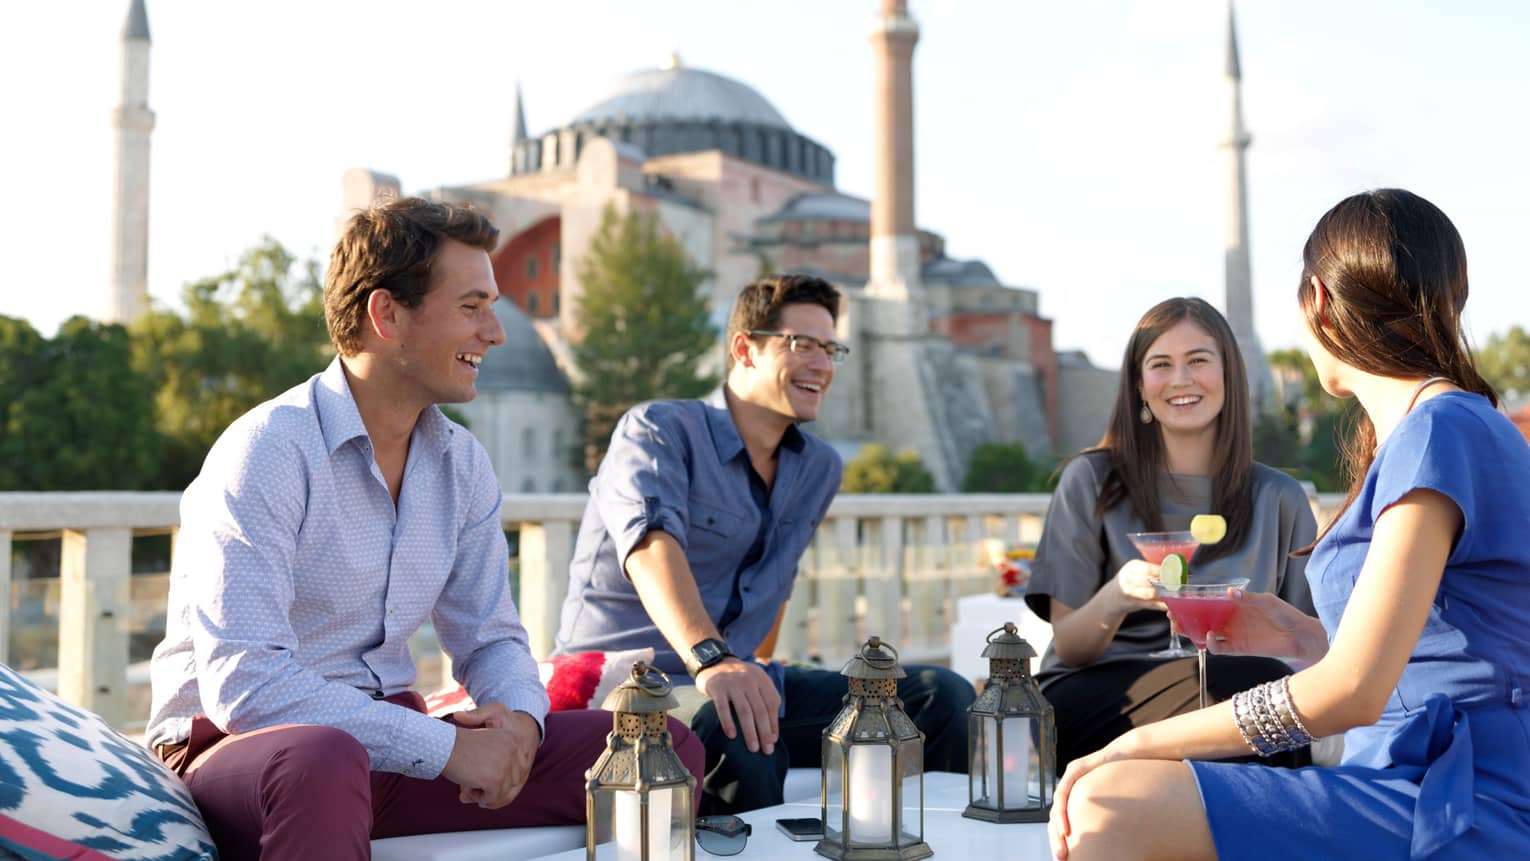 Two men and two women with pink martinis sit on patio in front of balcony, mosque in background